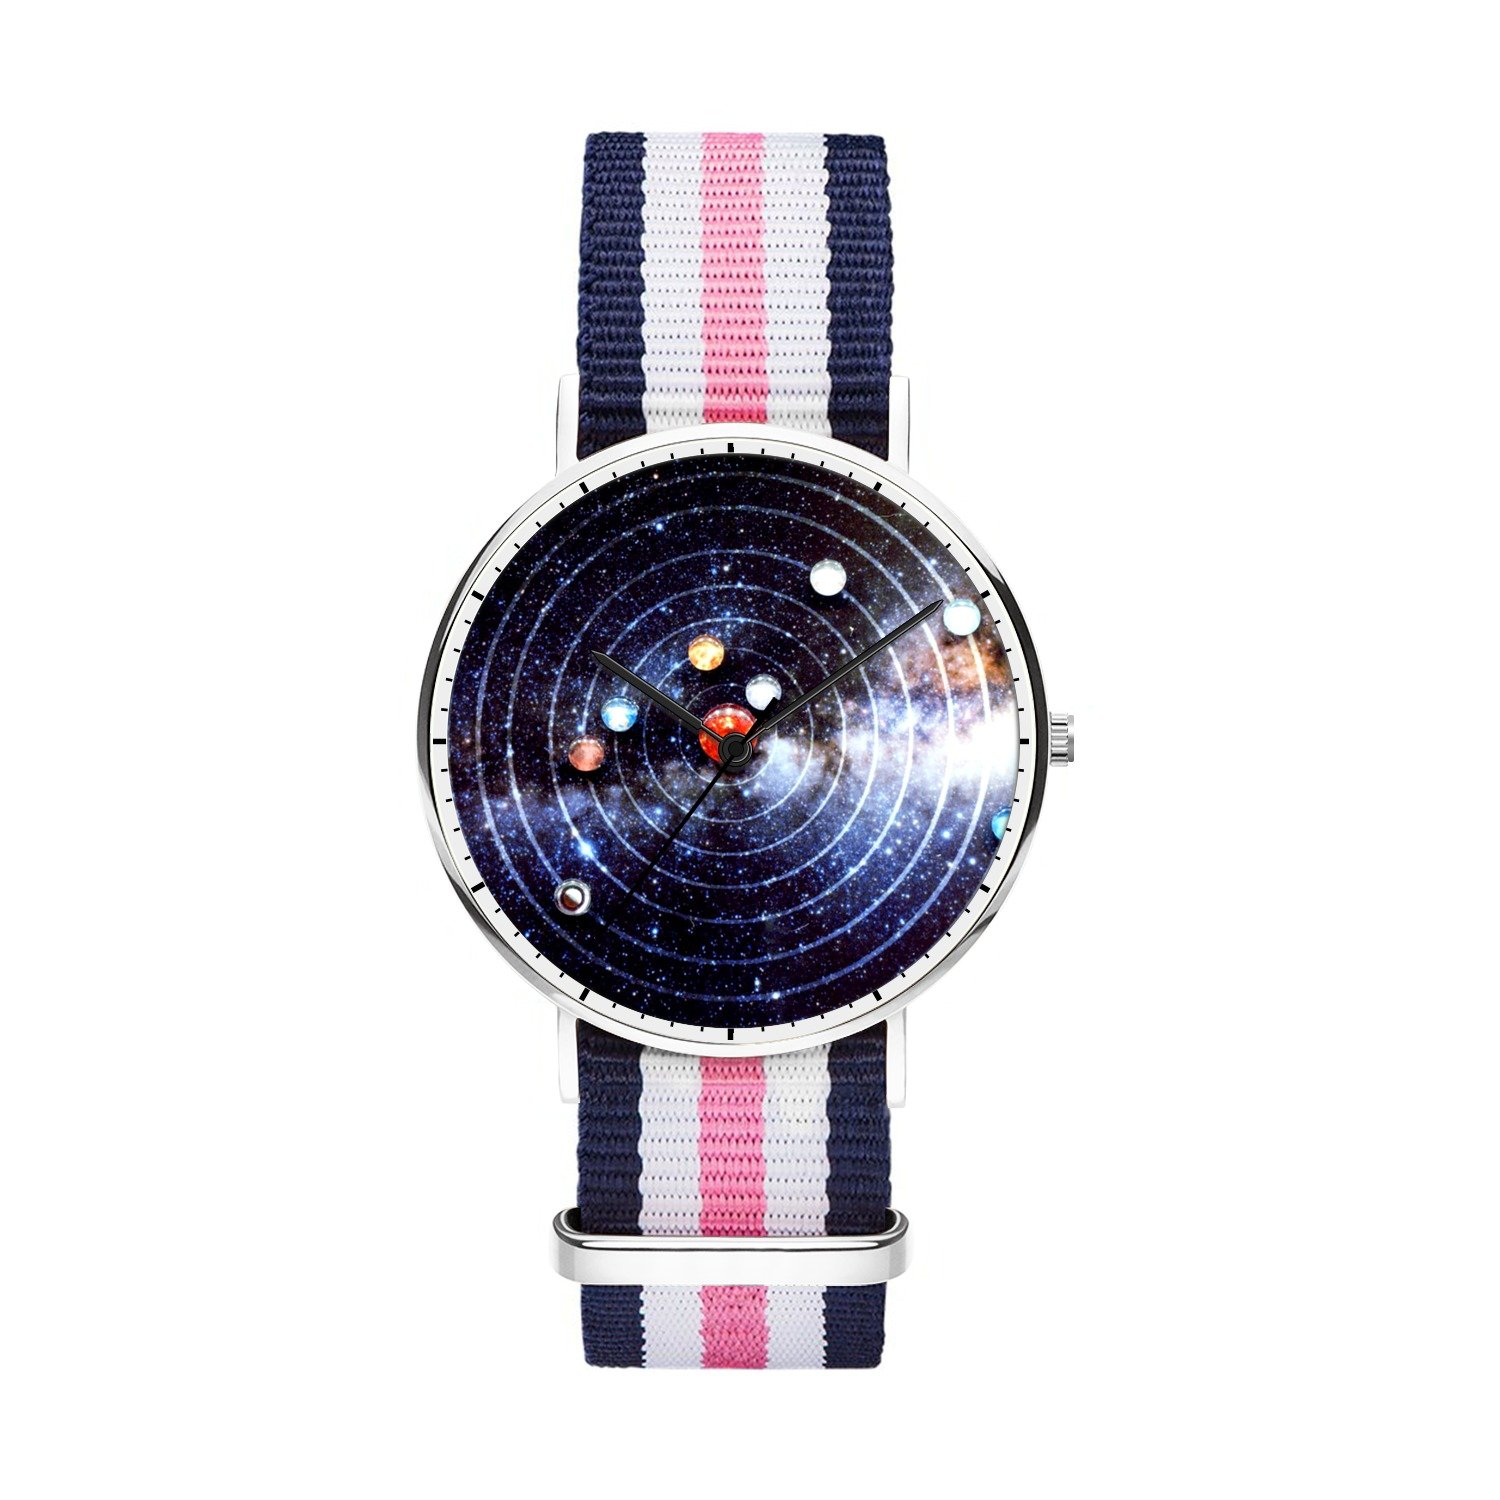 Mens watches, Boys Watches, Japanese Quartz Sliver Watches With Nylon Strap Analog Wrist Watch, Minimalism and Personalized Practical Design, Perfect Gift for Your Boyfriend.- Solar System